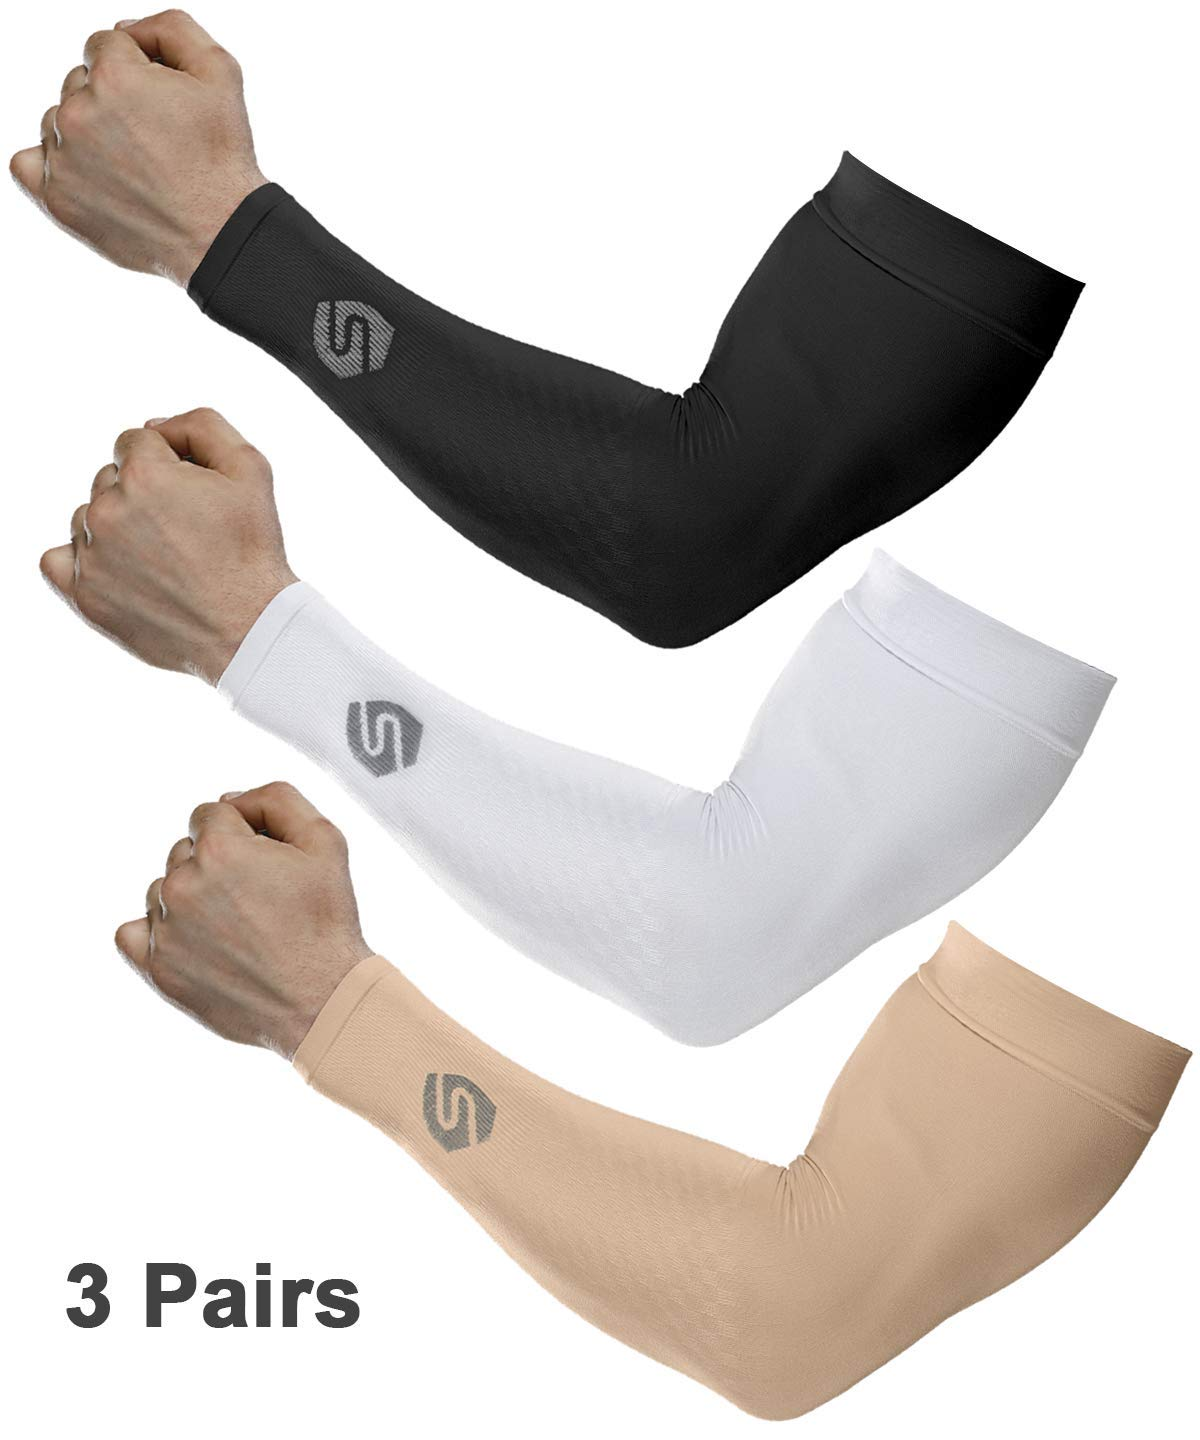 SHINYMOD Cooling Sun Sleeves 2018 Newest Upgraded Version 1 Pair/ 3 Pairs UV Protection Sunblock Arm Tattoo Cover Sleeves for Men Women Cycling Driving Golf Running-3 Pair Black+White+Beige